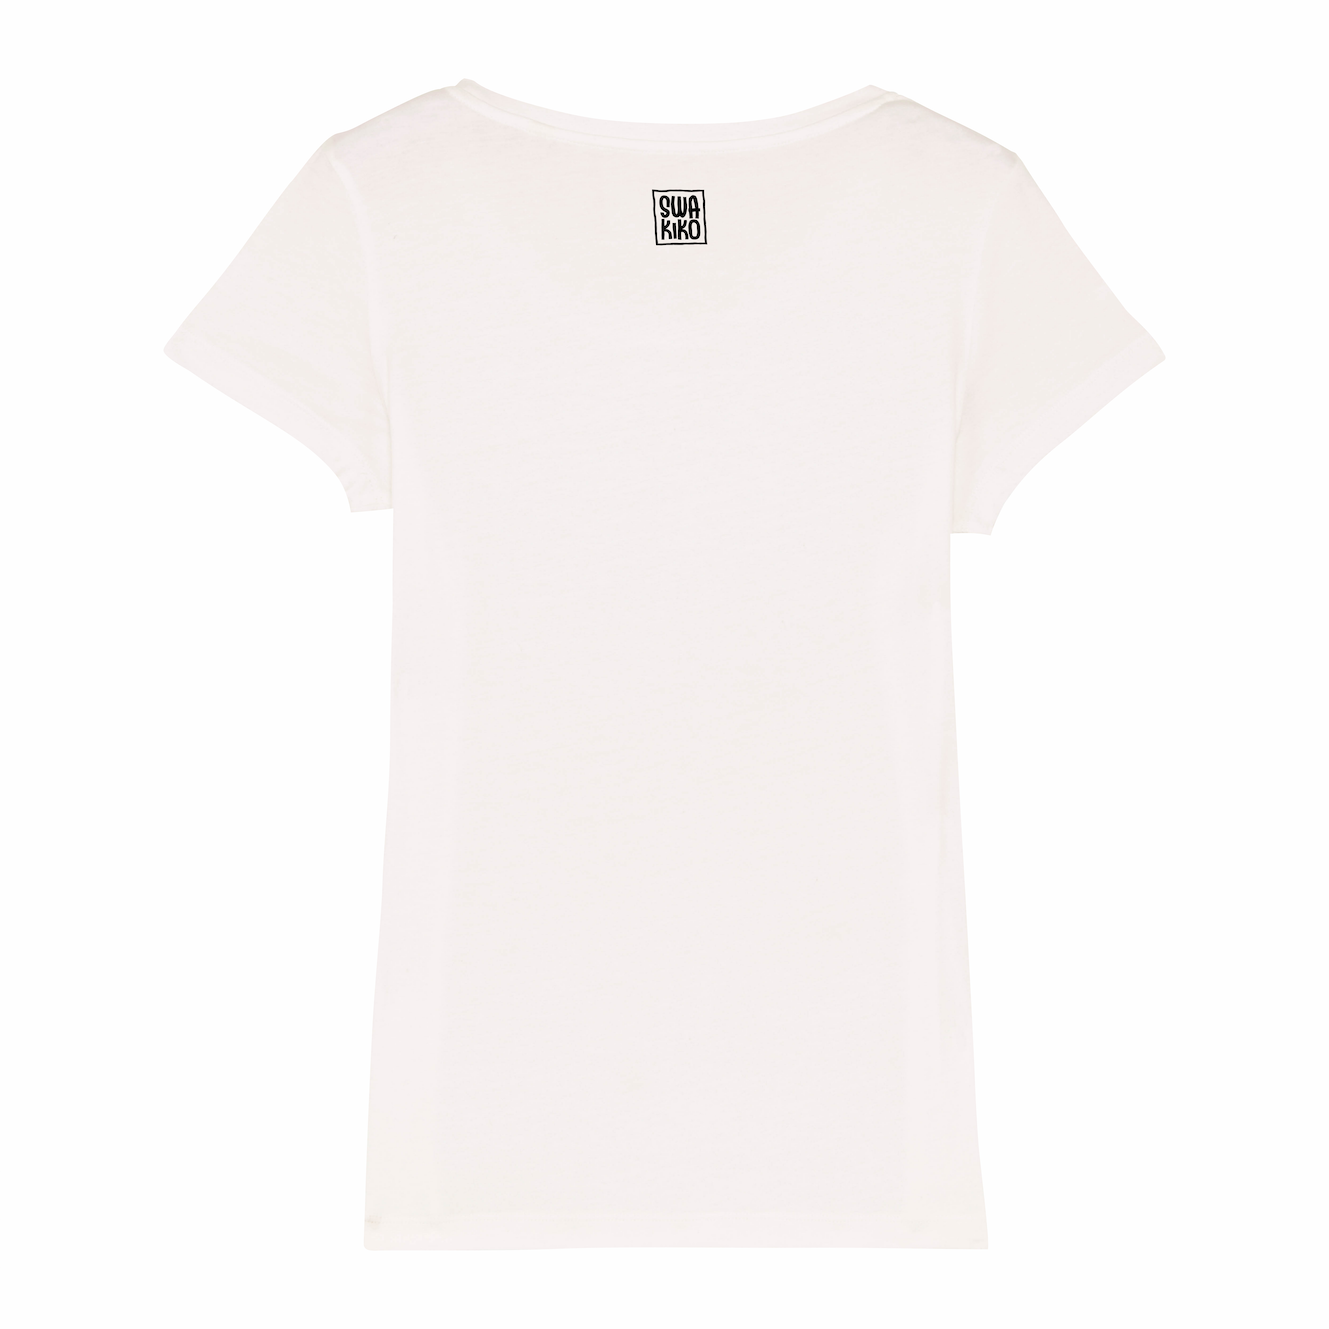 Logo SWAKIKO, Surf t-shirt women white